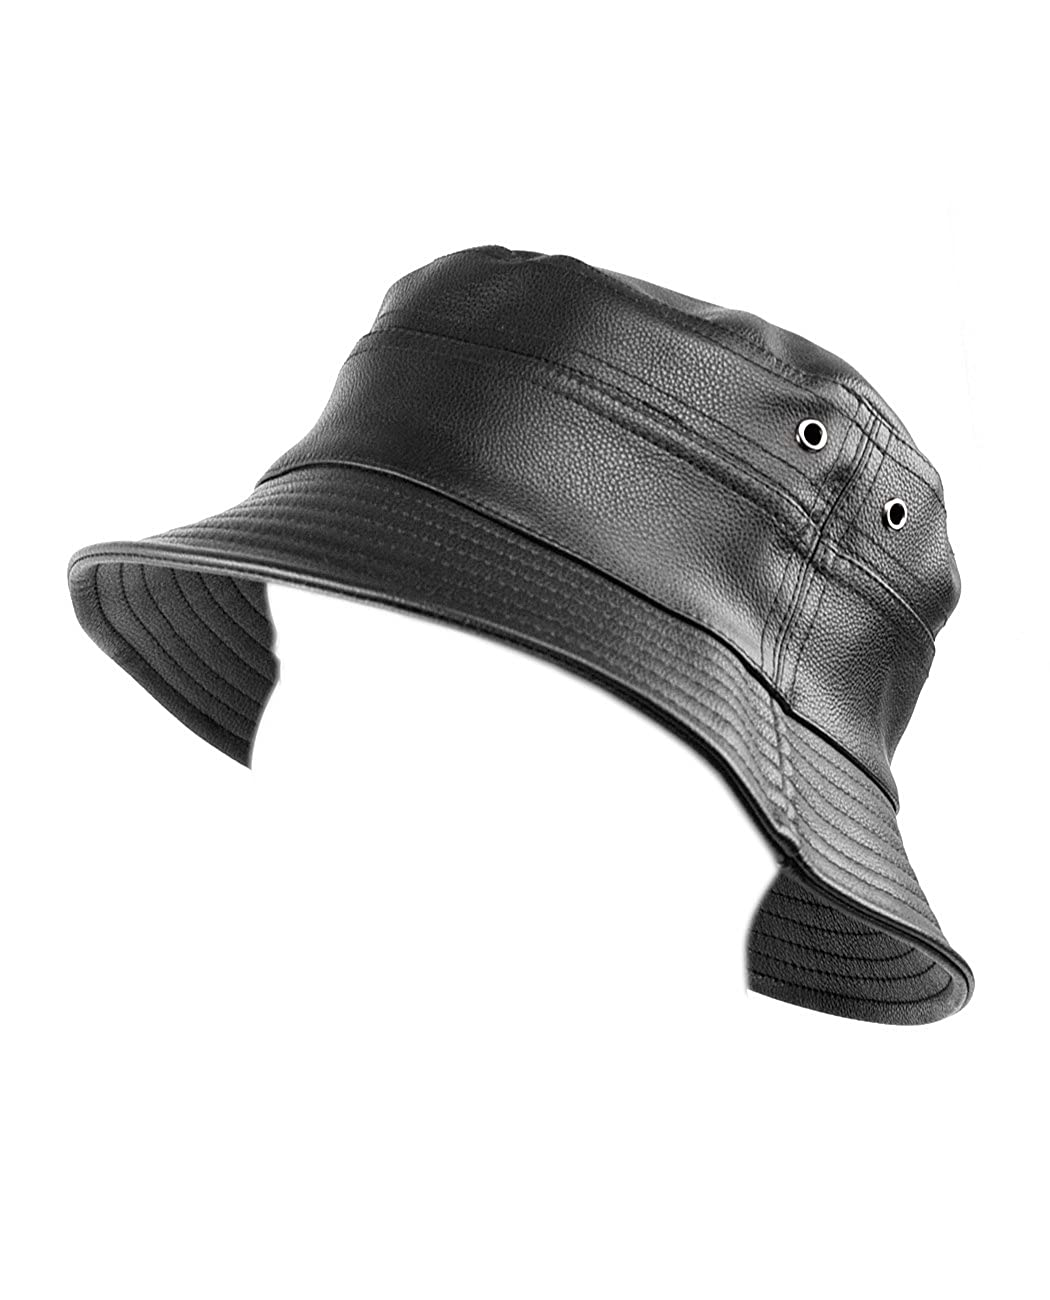 5621f6f1fd4 City Hunter Solid Color Lightweight Comfortable Crushable PU Leather Bucket  Hat  Amazon.co.uk  Clothing